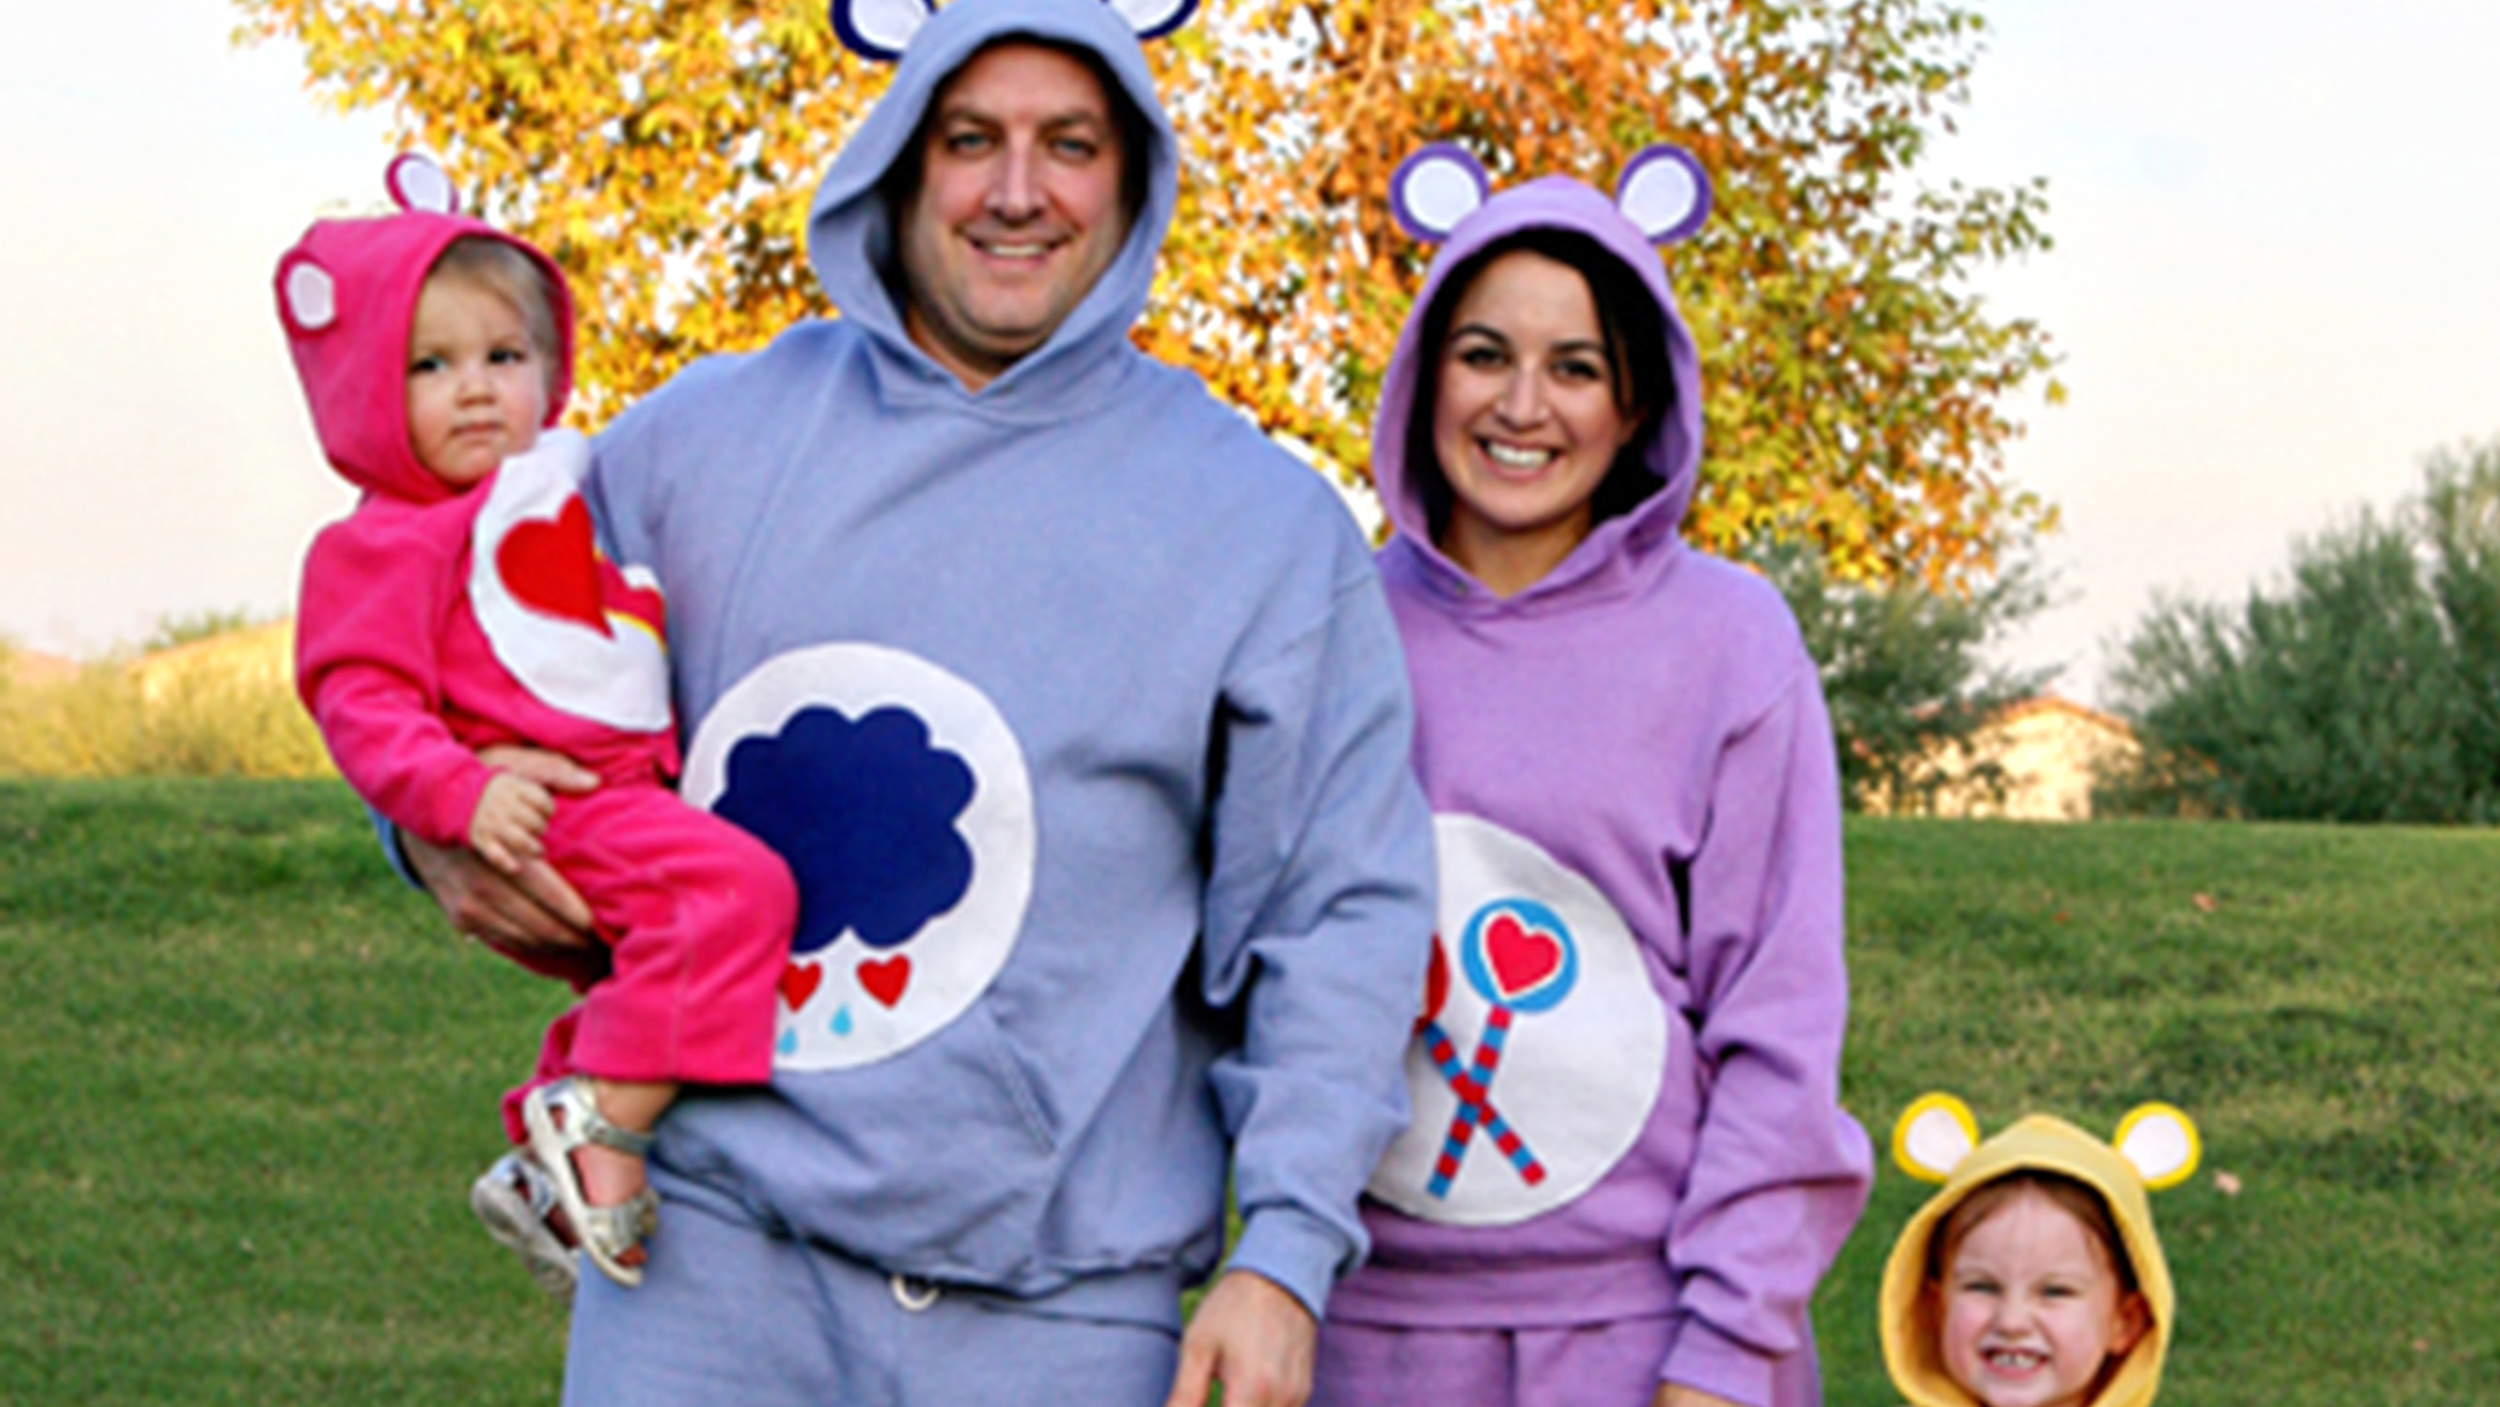 13 low-cost funny DIY Halloween costumes for families  sc 1 st  Today Show & Team spirit! 13 low-cost funny DIY Halloween costumes for families